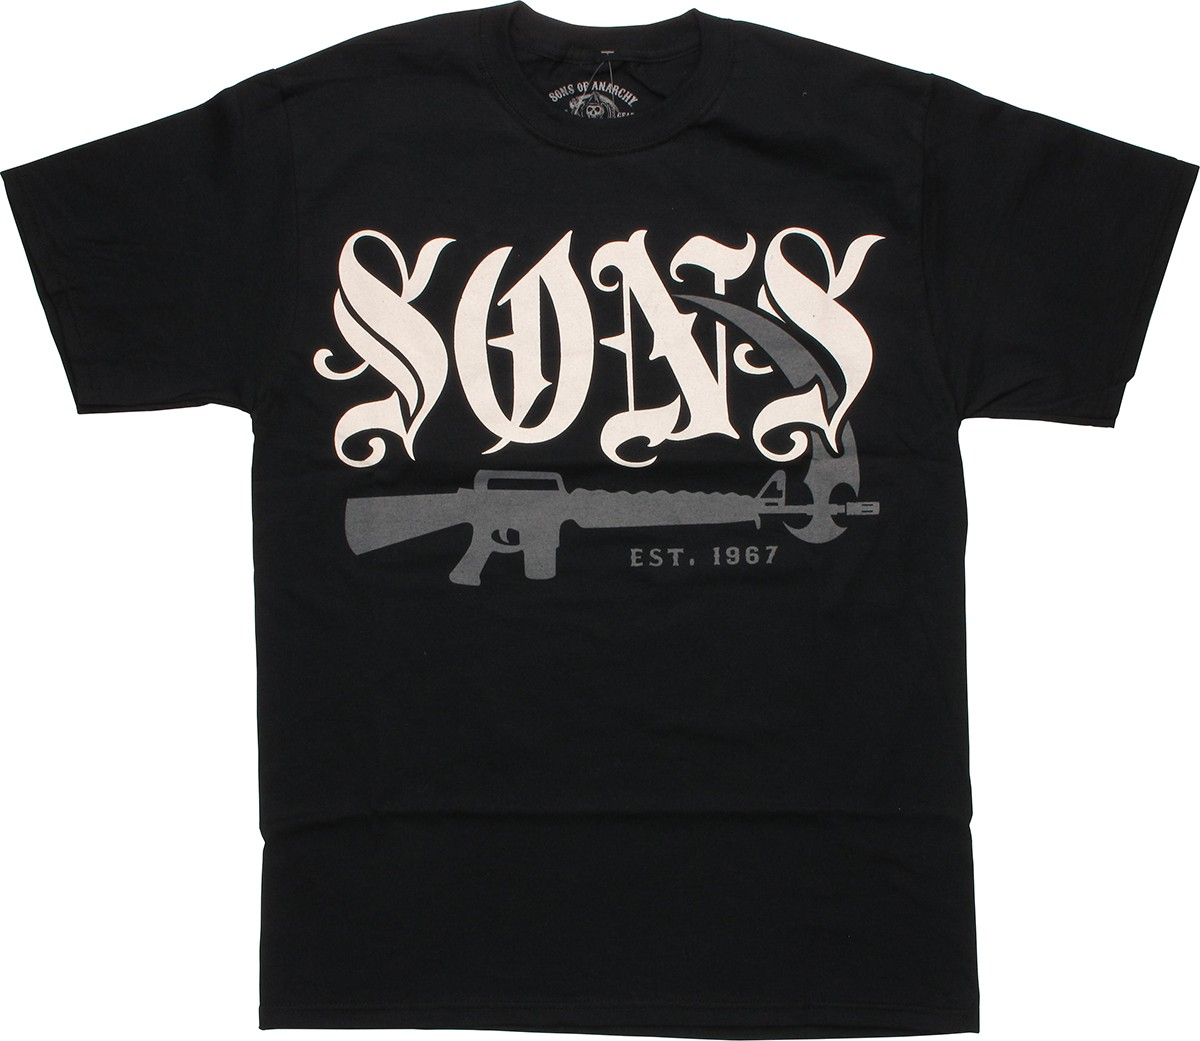 sons of anarchy old english guns t shirt. Black Bedroom Furniture Sets. Home Design Ideas